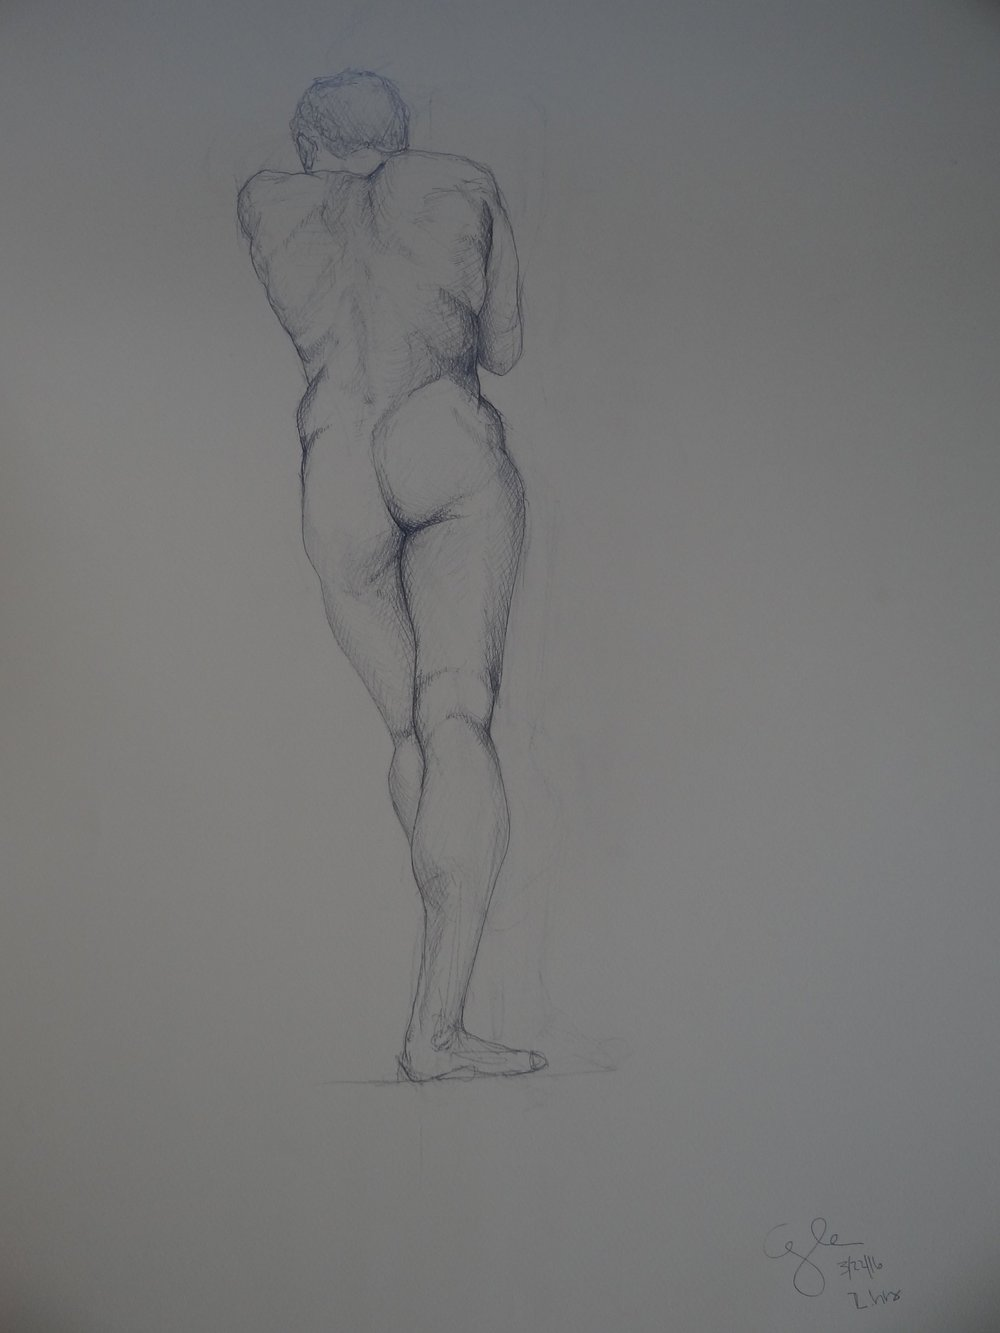 "1.5hr Figure Drawing of Male Back Lean, Pencil on Paper, 50x65"", 2016"